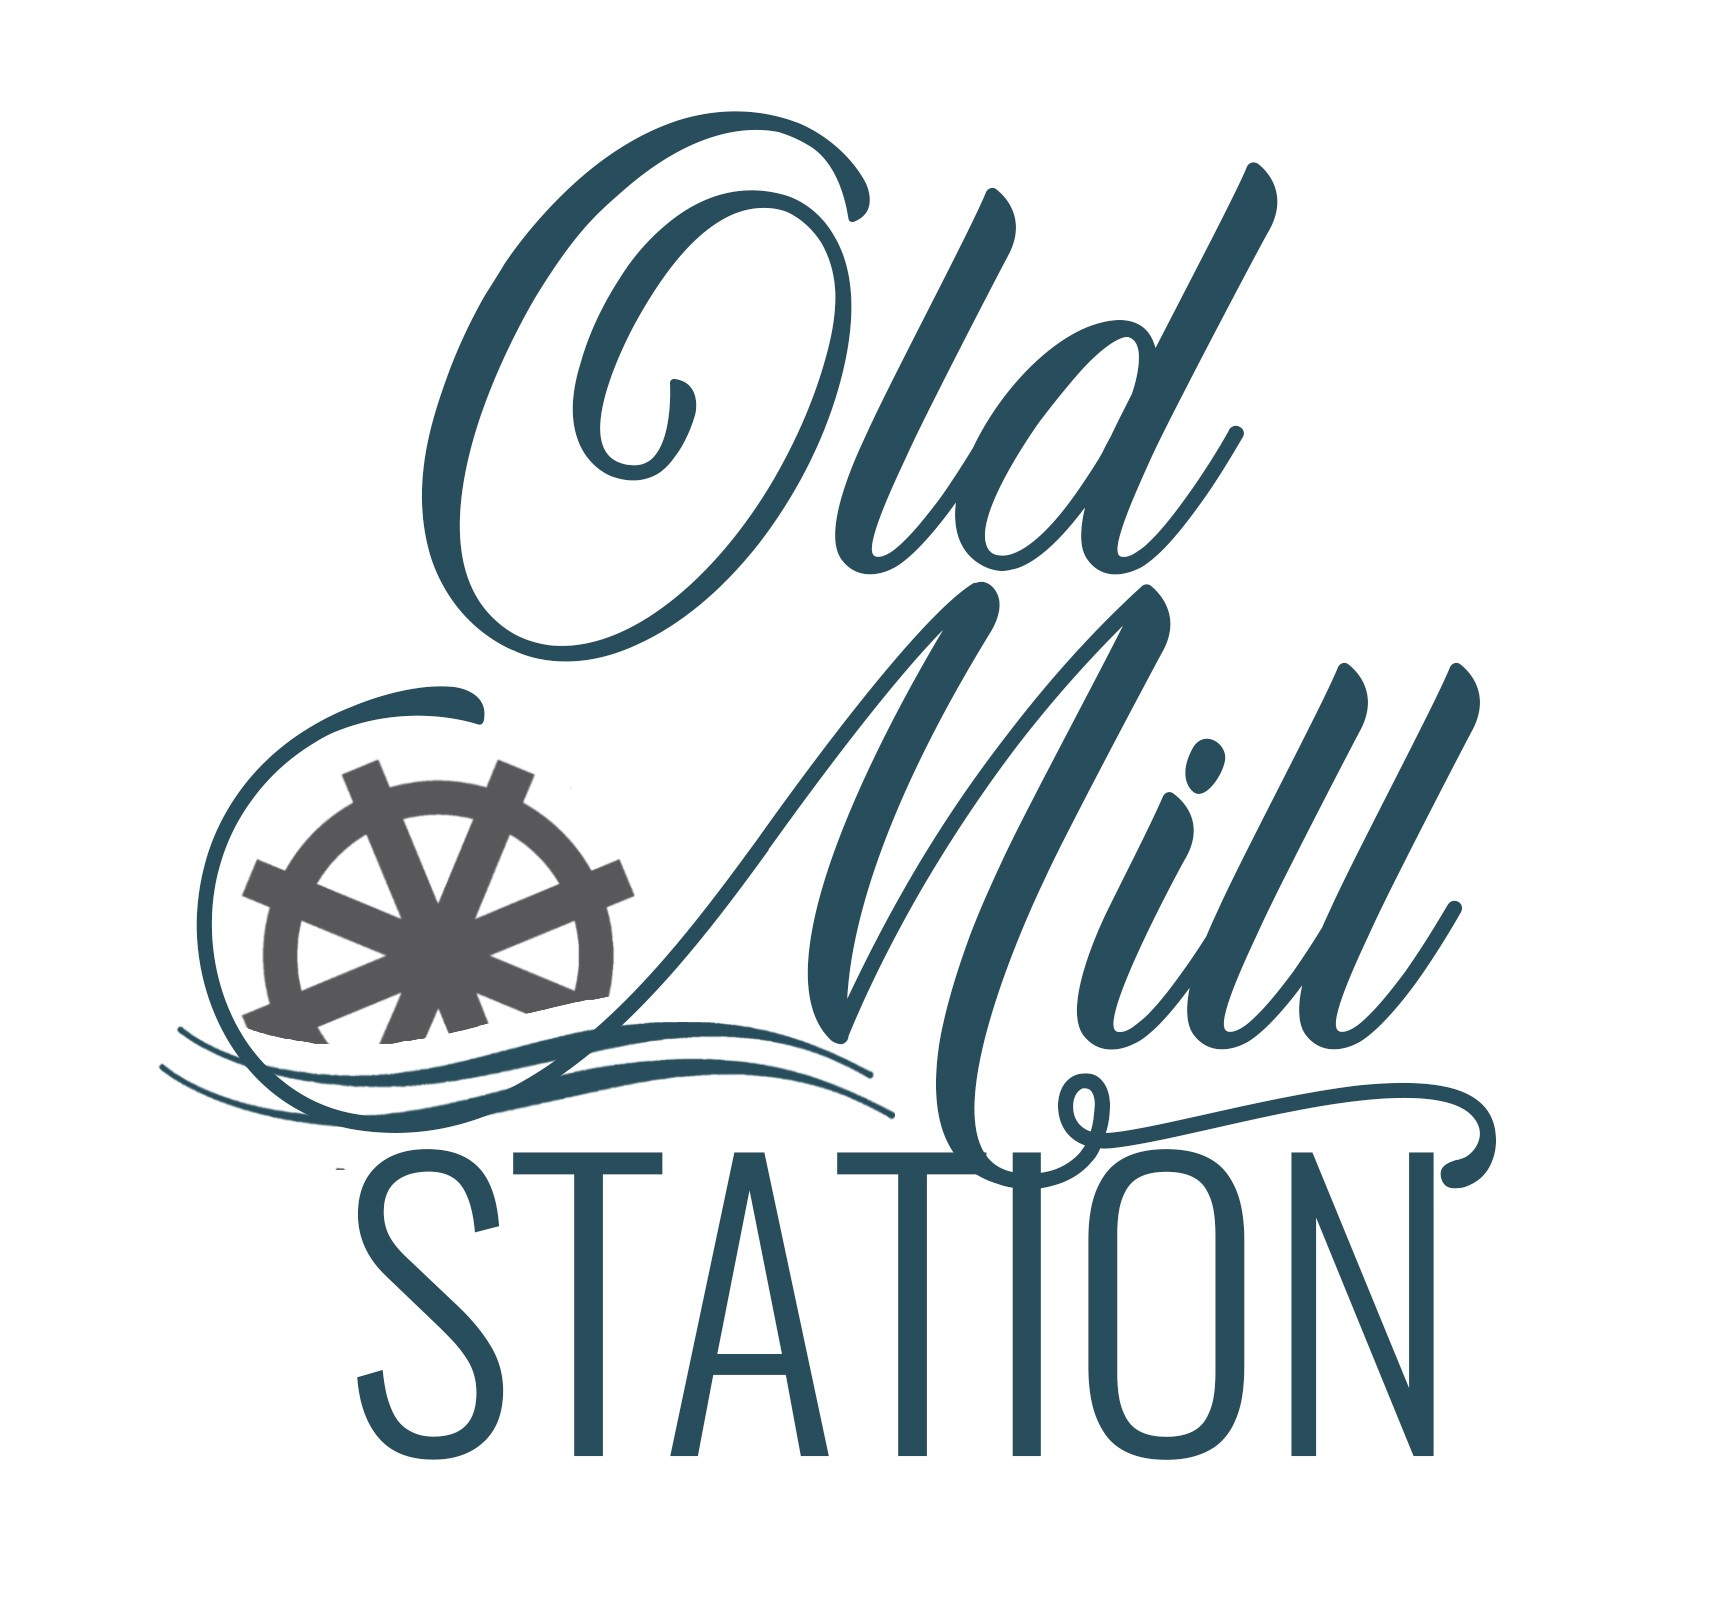 Welcome Home to Old Mill Station - The Winfield Plan - NEW Exclusive Boutique Community Conveniently Located Close to Fort Campbell - PRESOLD HOMES AVAILABLE Starting at $170,000 - Pick Your Selections - White & Grey Cabinetry/Granite Counters/Stainless Steel Appliances ALL STANDARD! Hurry These Homes Will Sell Fast!